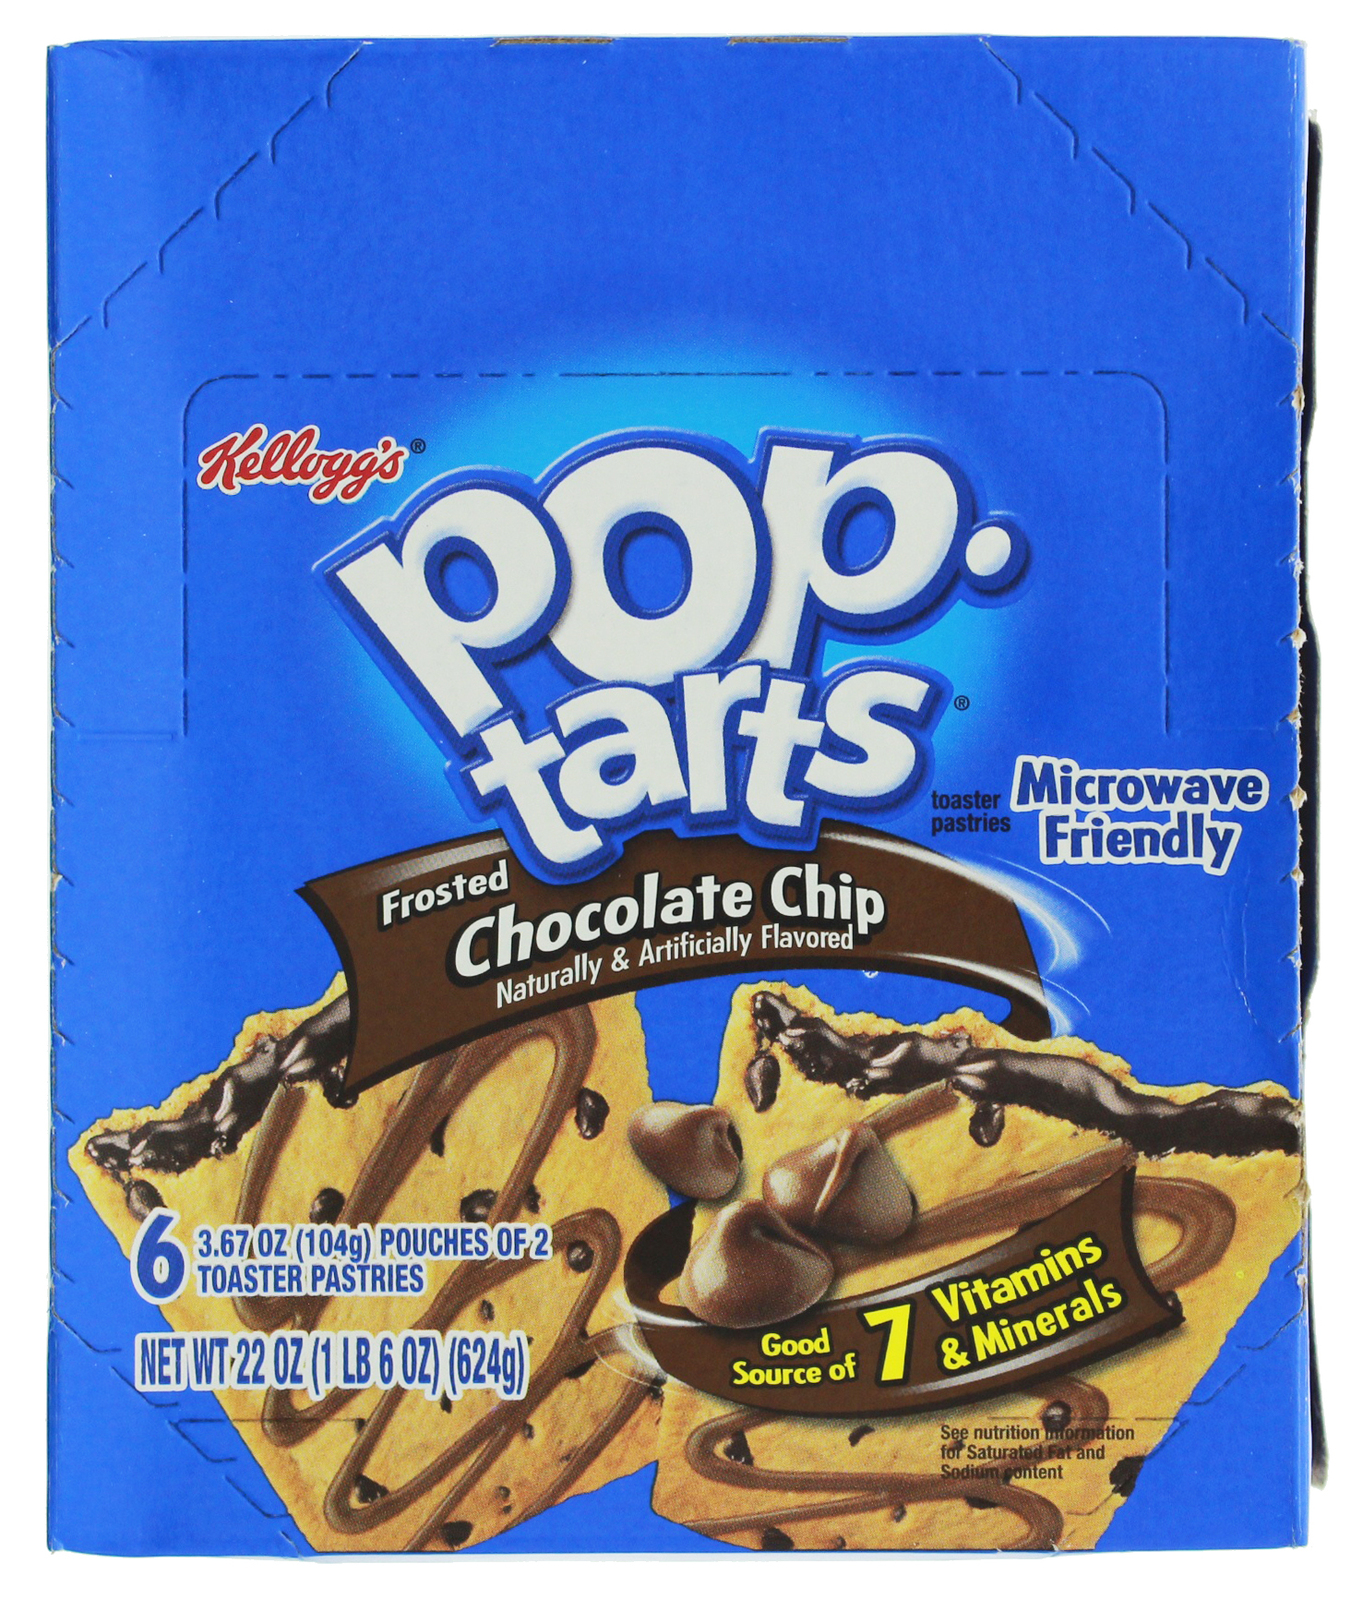 Kellogg's Pop Tarts - Chocolate Chip (12 Pack) image